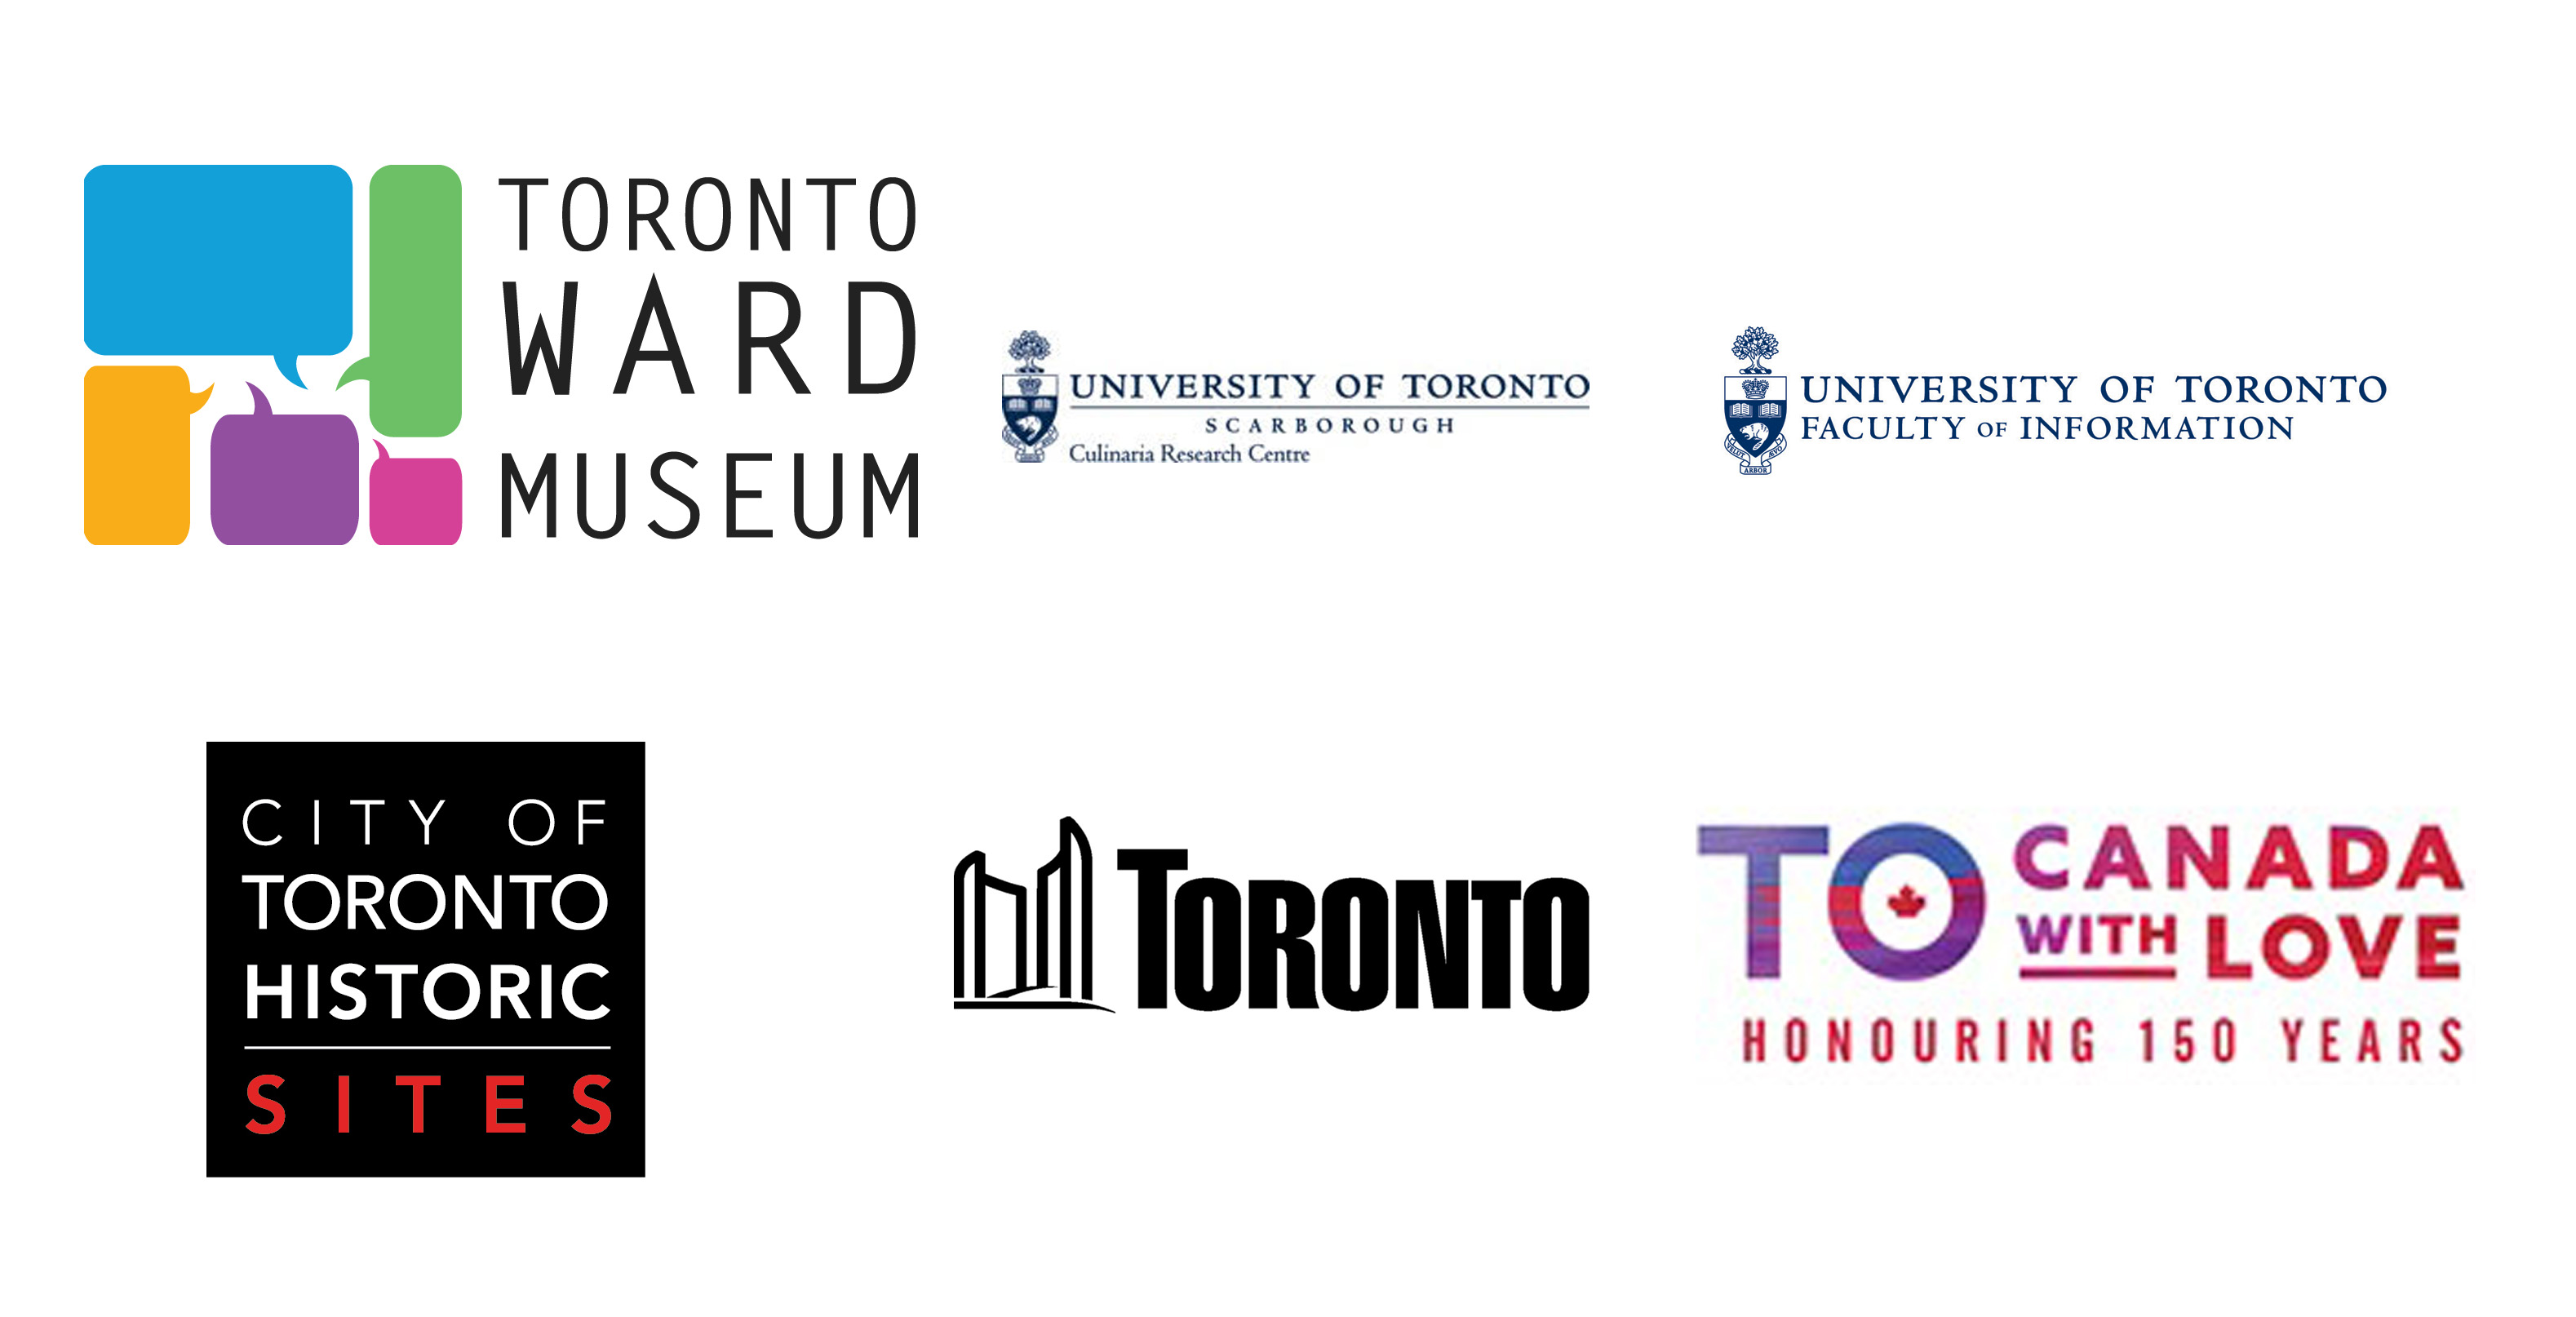 Dishing Up Toronto Ward Museum and City of Toronto partner logo combo